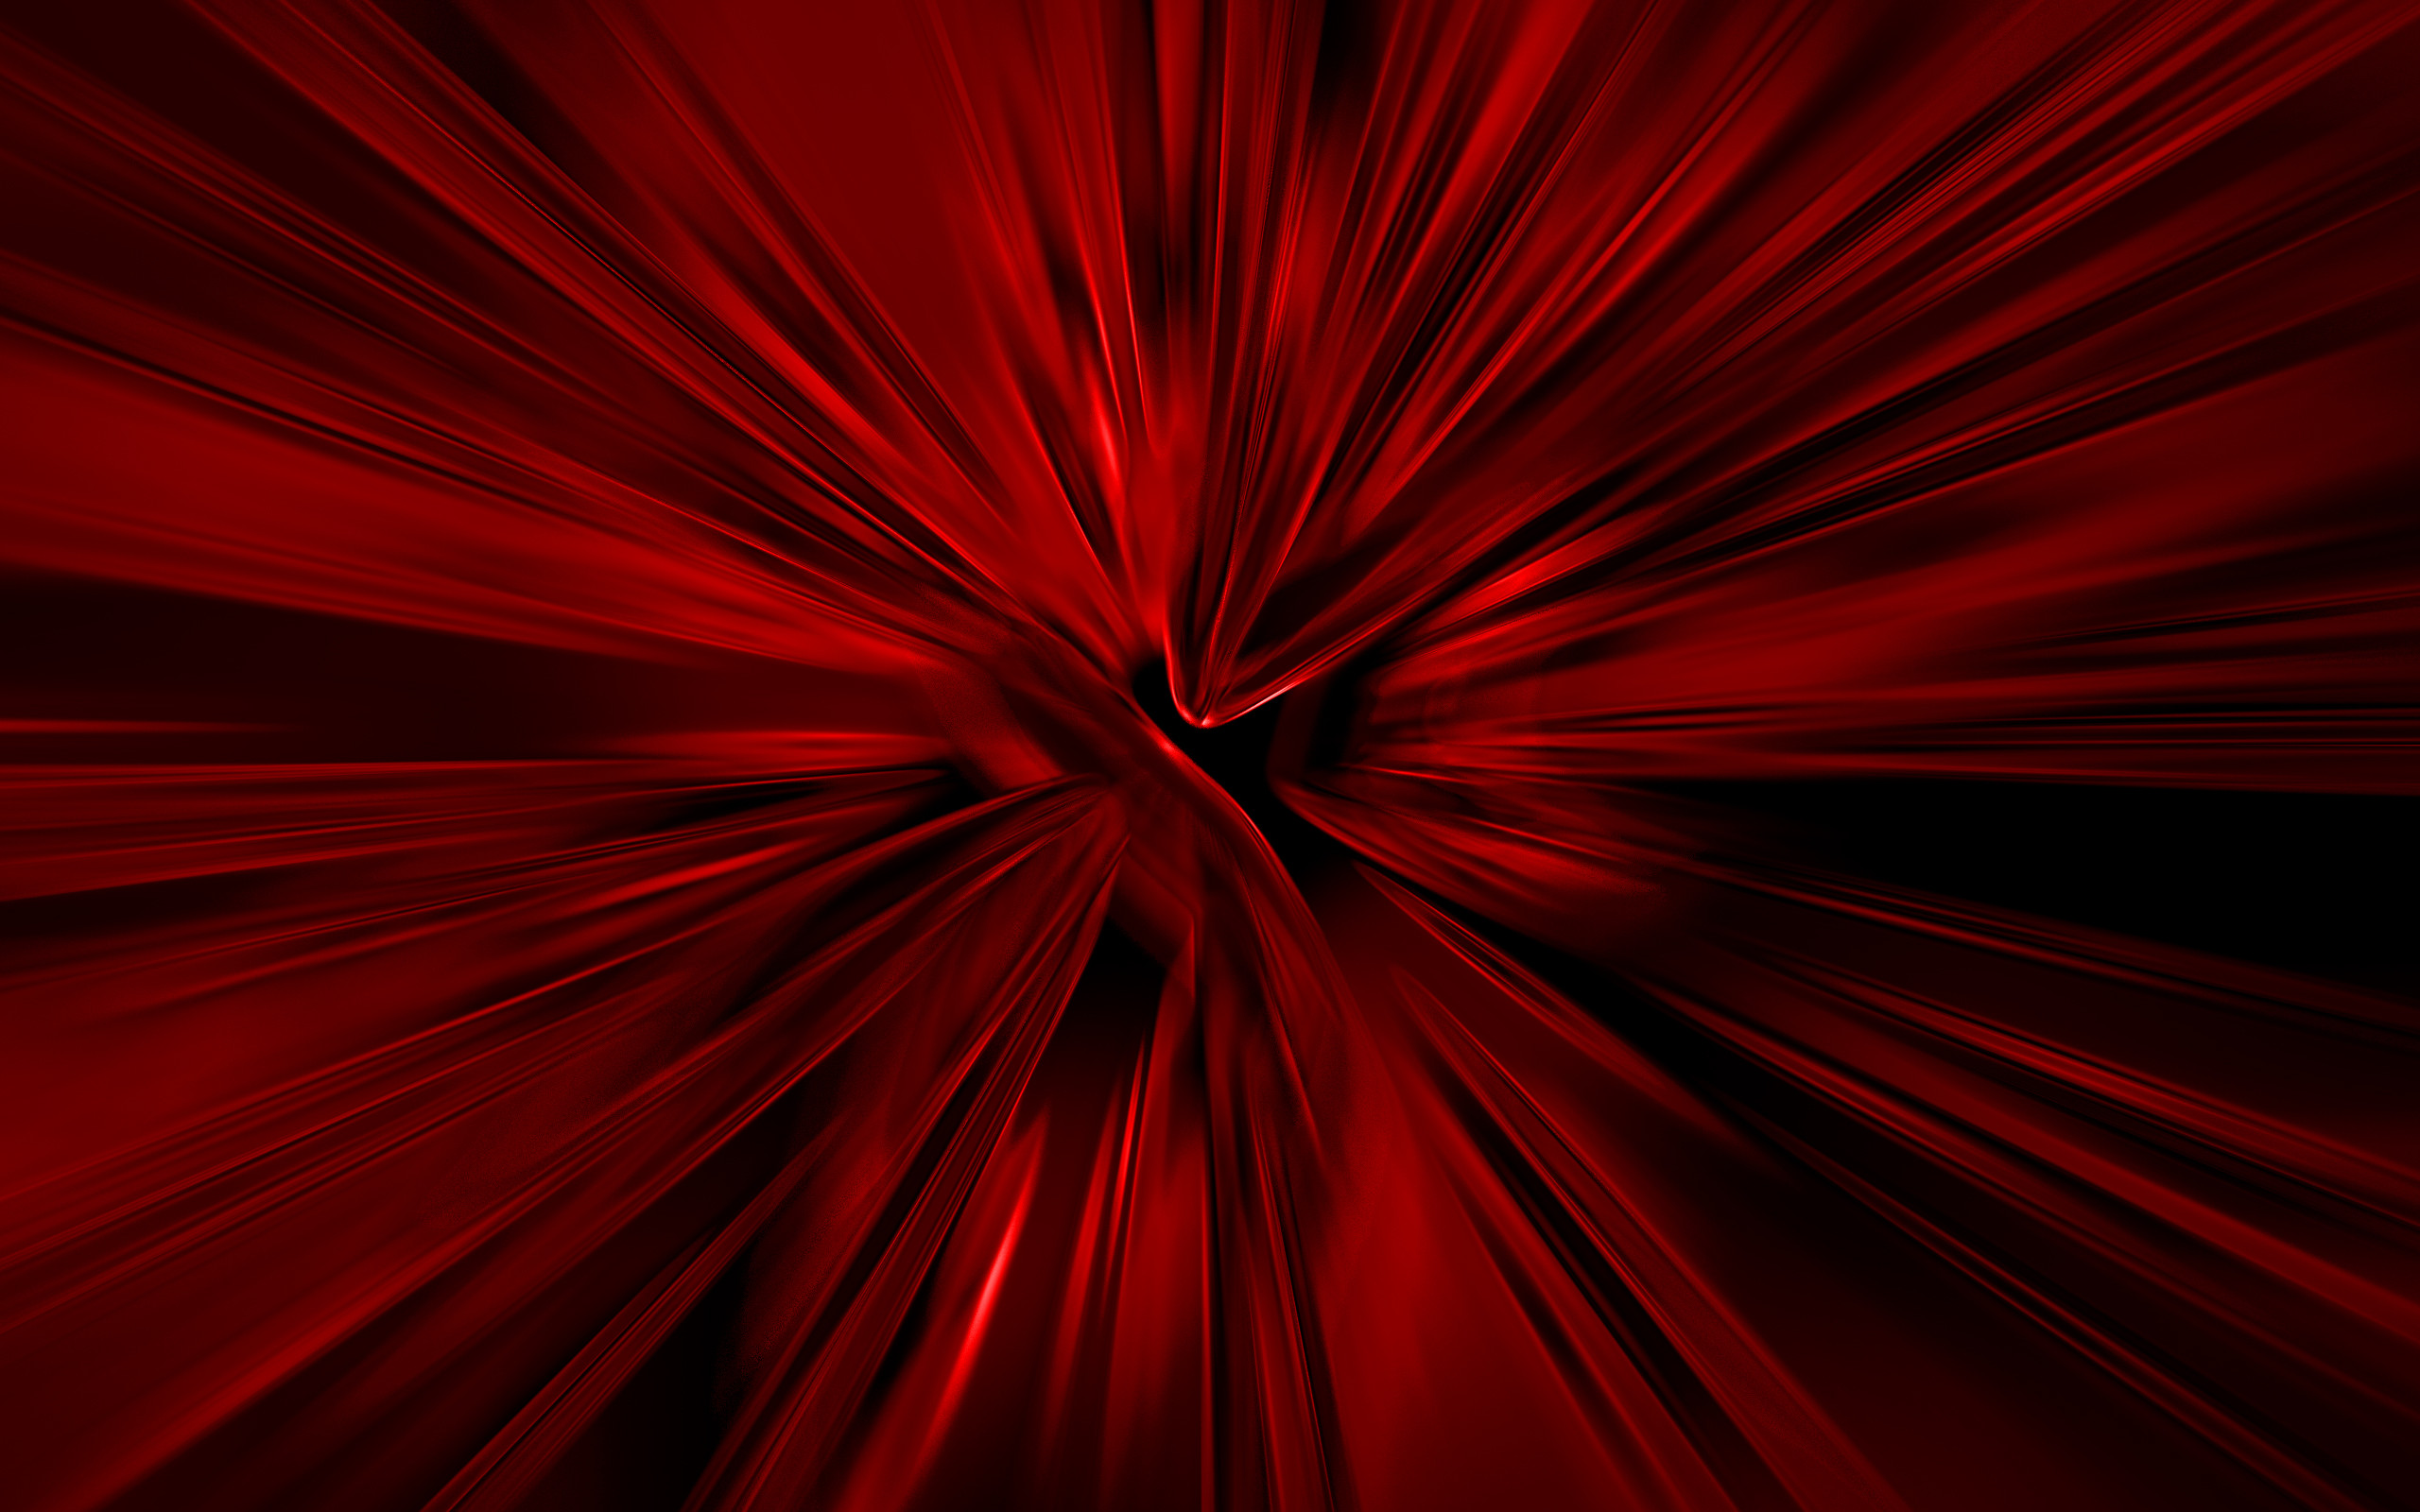 2560x1600 Grande Blackbackground Desk Background Red Along With Black Background Desk  Red Together With Red Along With